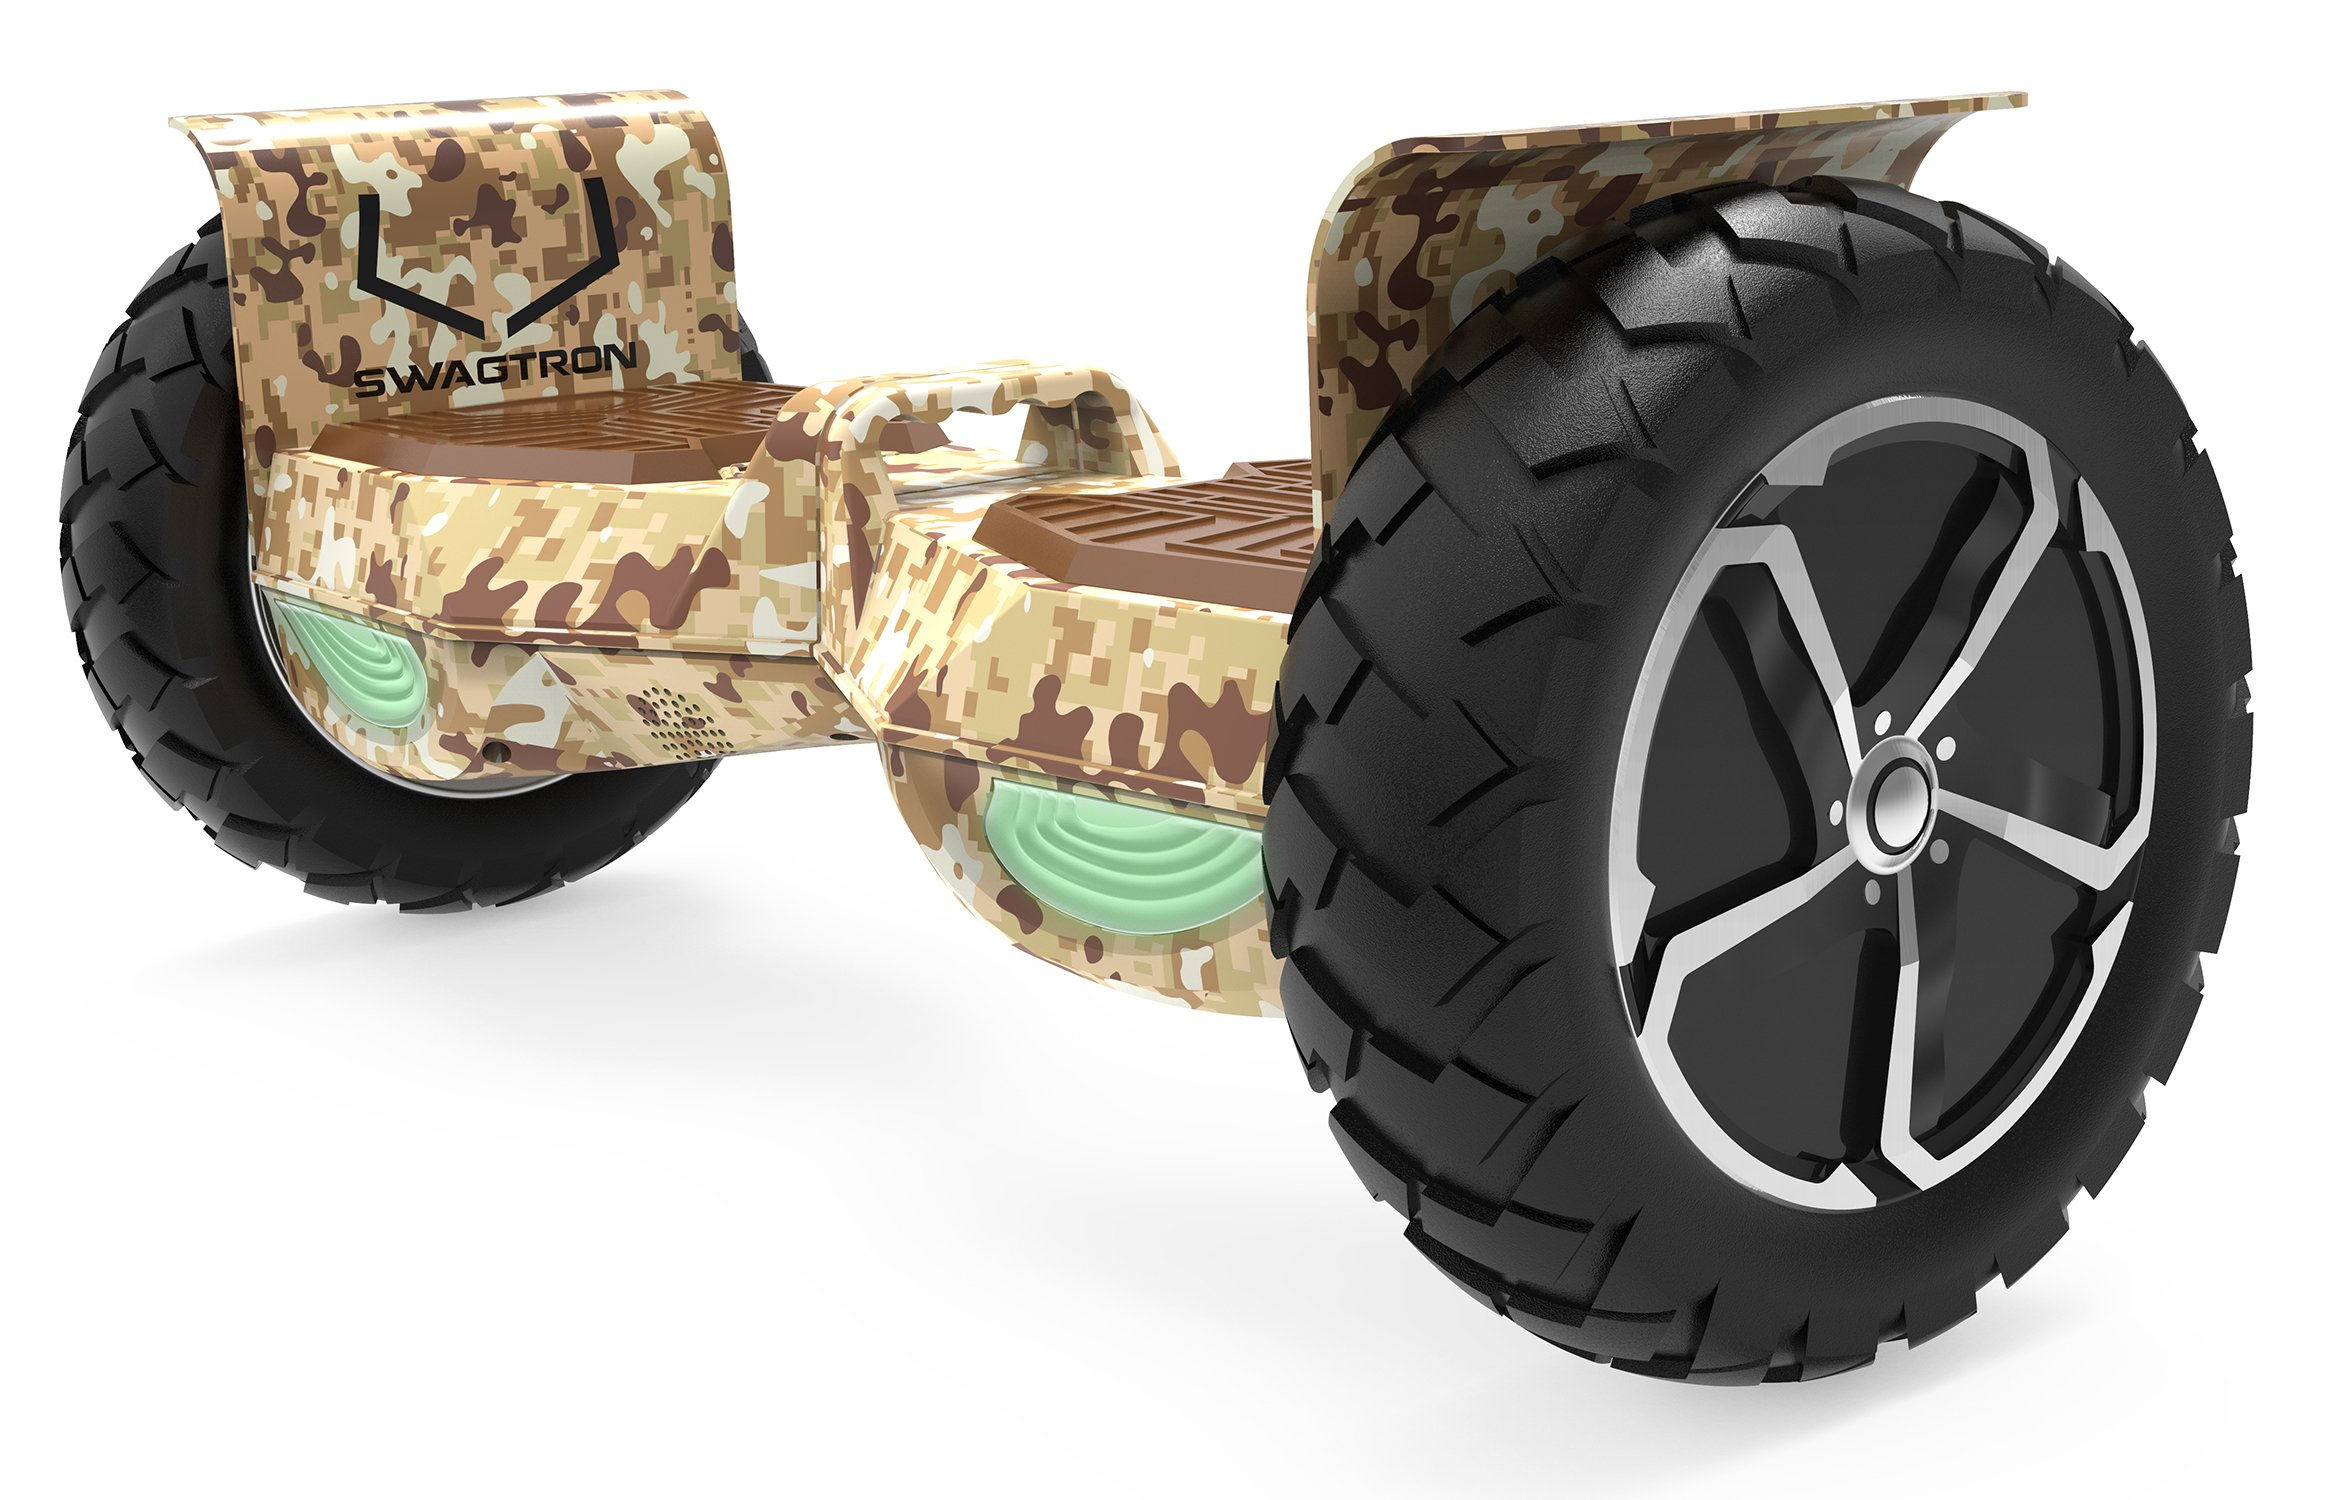 Swagtron Swagboard Outlaw T6 Off-Road Hoverboard - First in The World to Handle Over 380 LBS, Up to 12 MPH, UL2272 Certified, 10'' Wheel by Swagtron